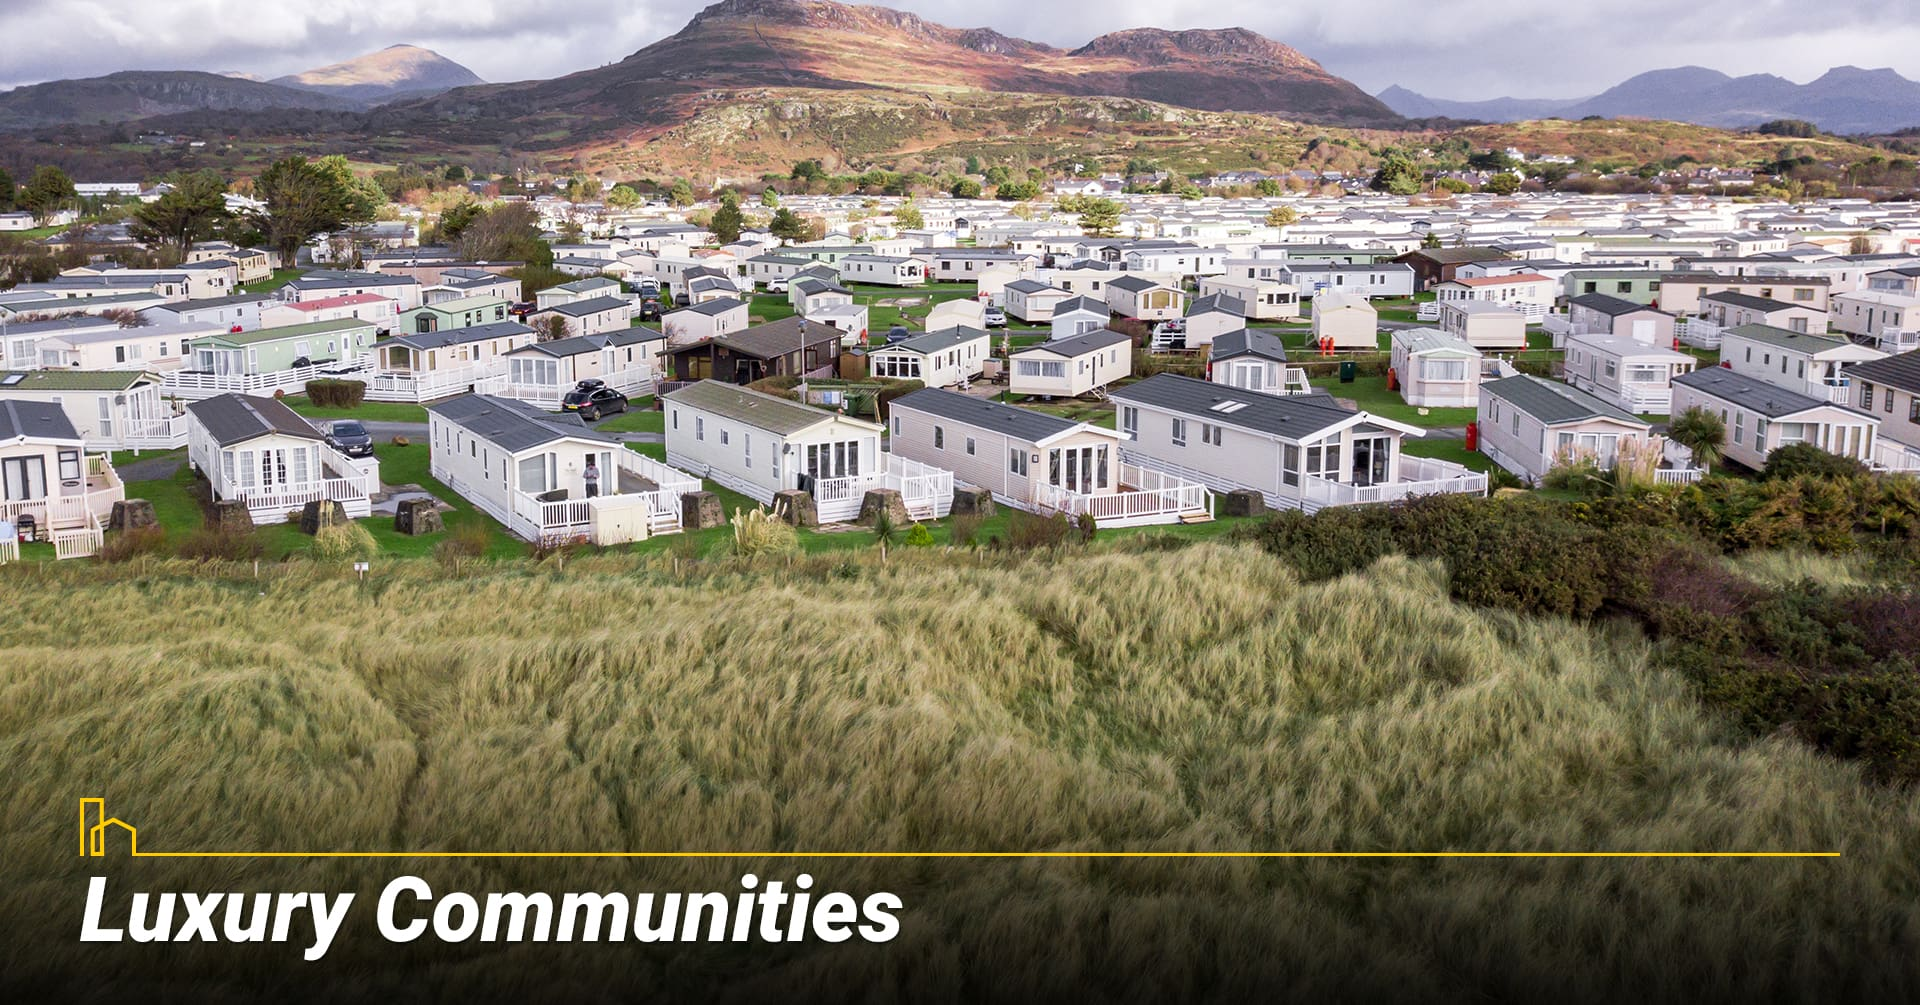 Luxury Communities, high end mobile home communities